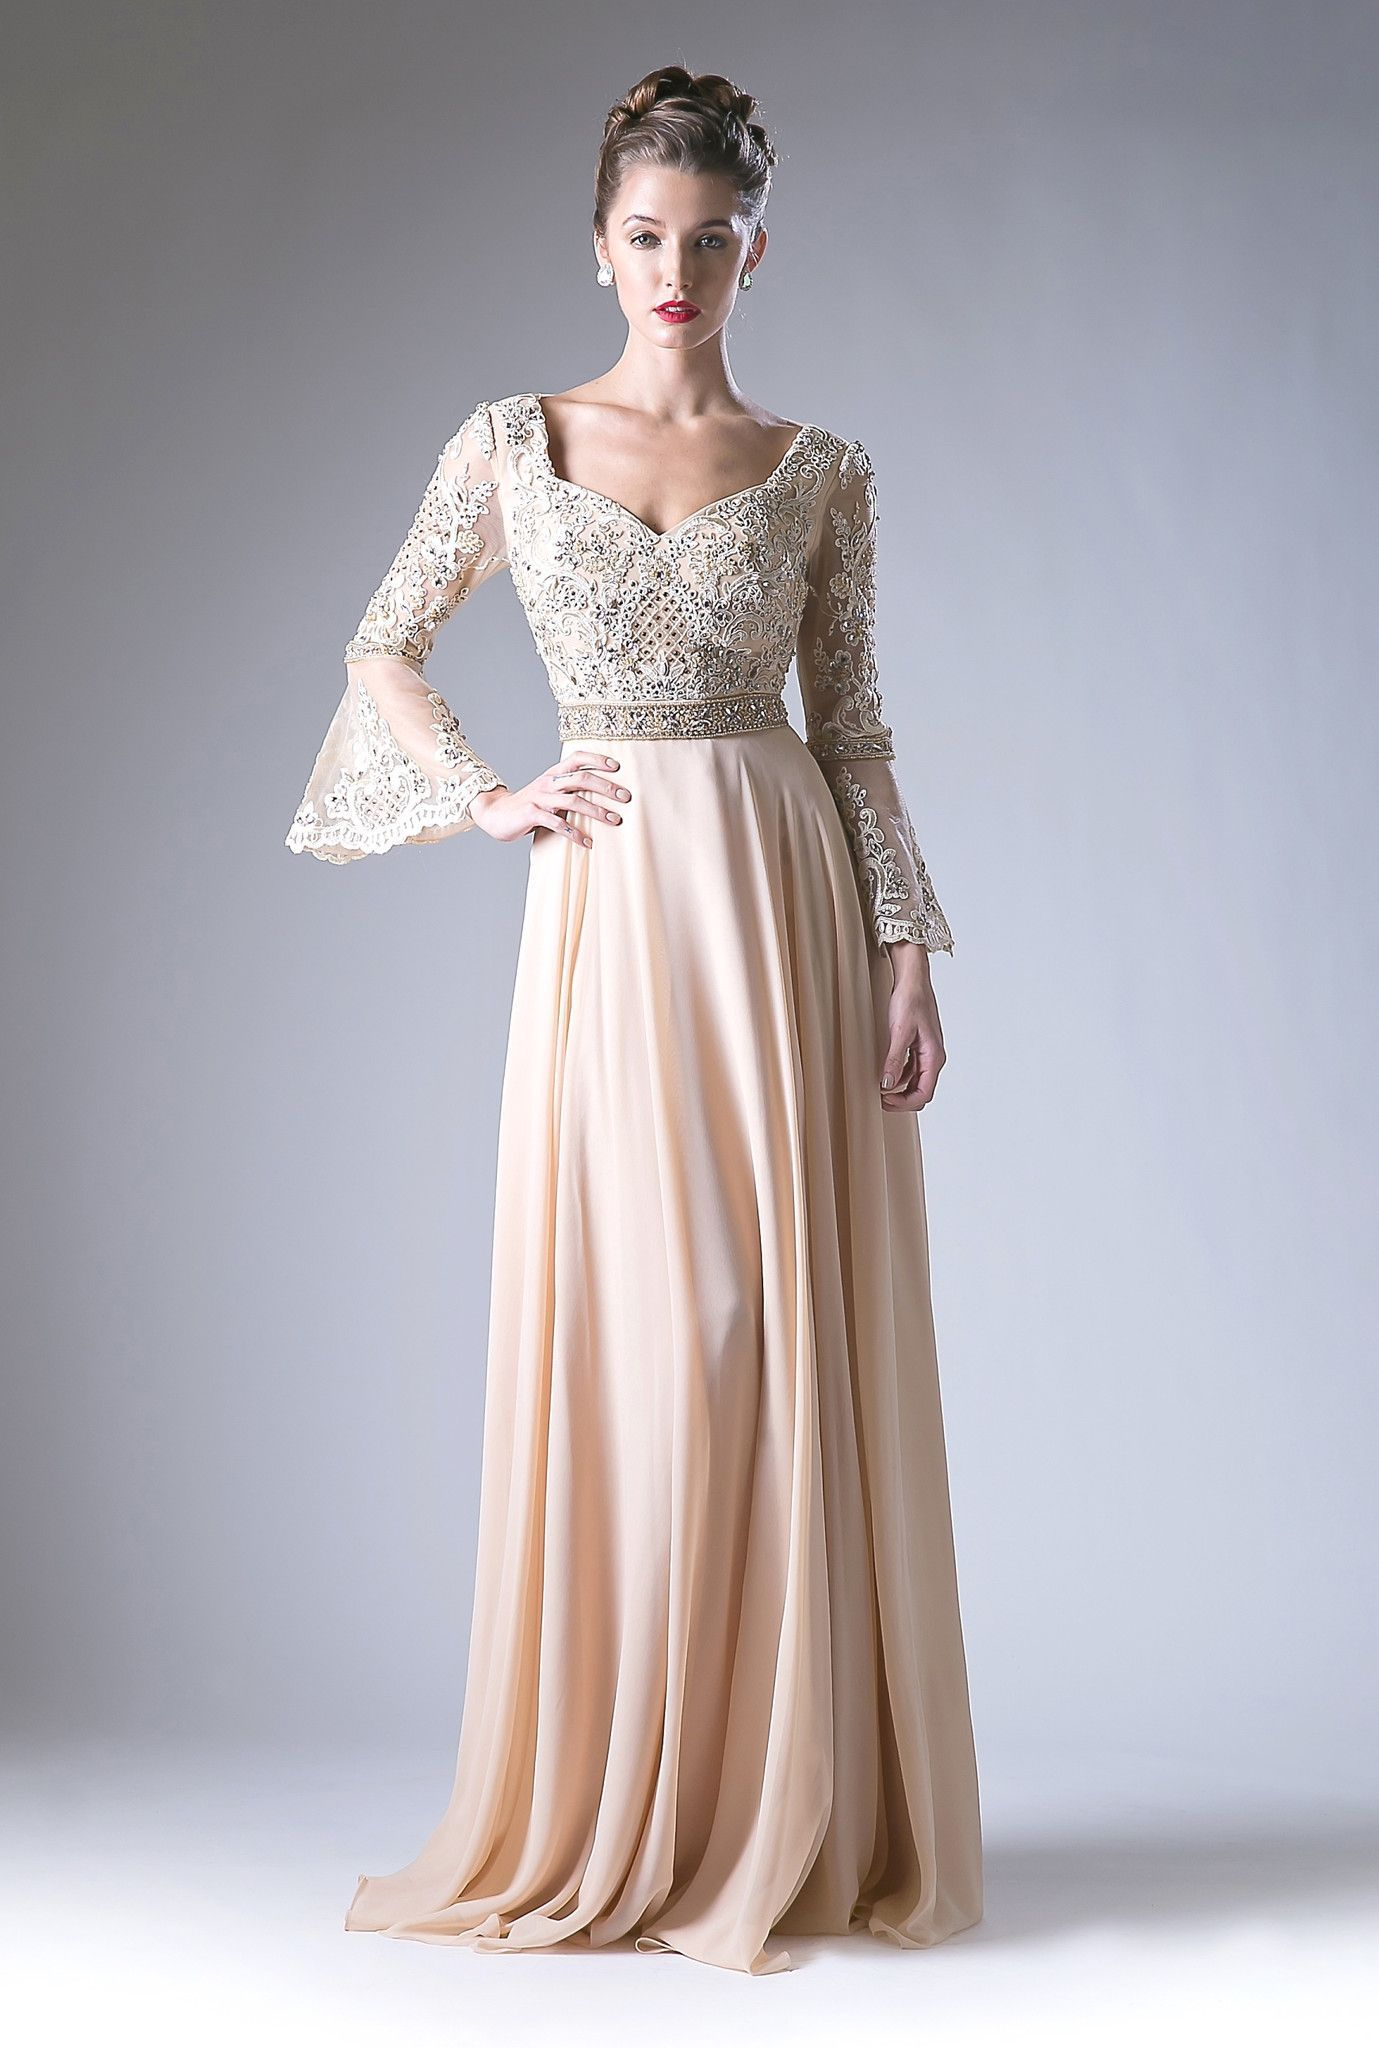 Look And Feel Incredible In This Long Embellished Bell Sleeve Dress